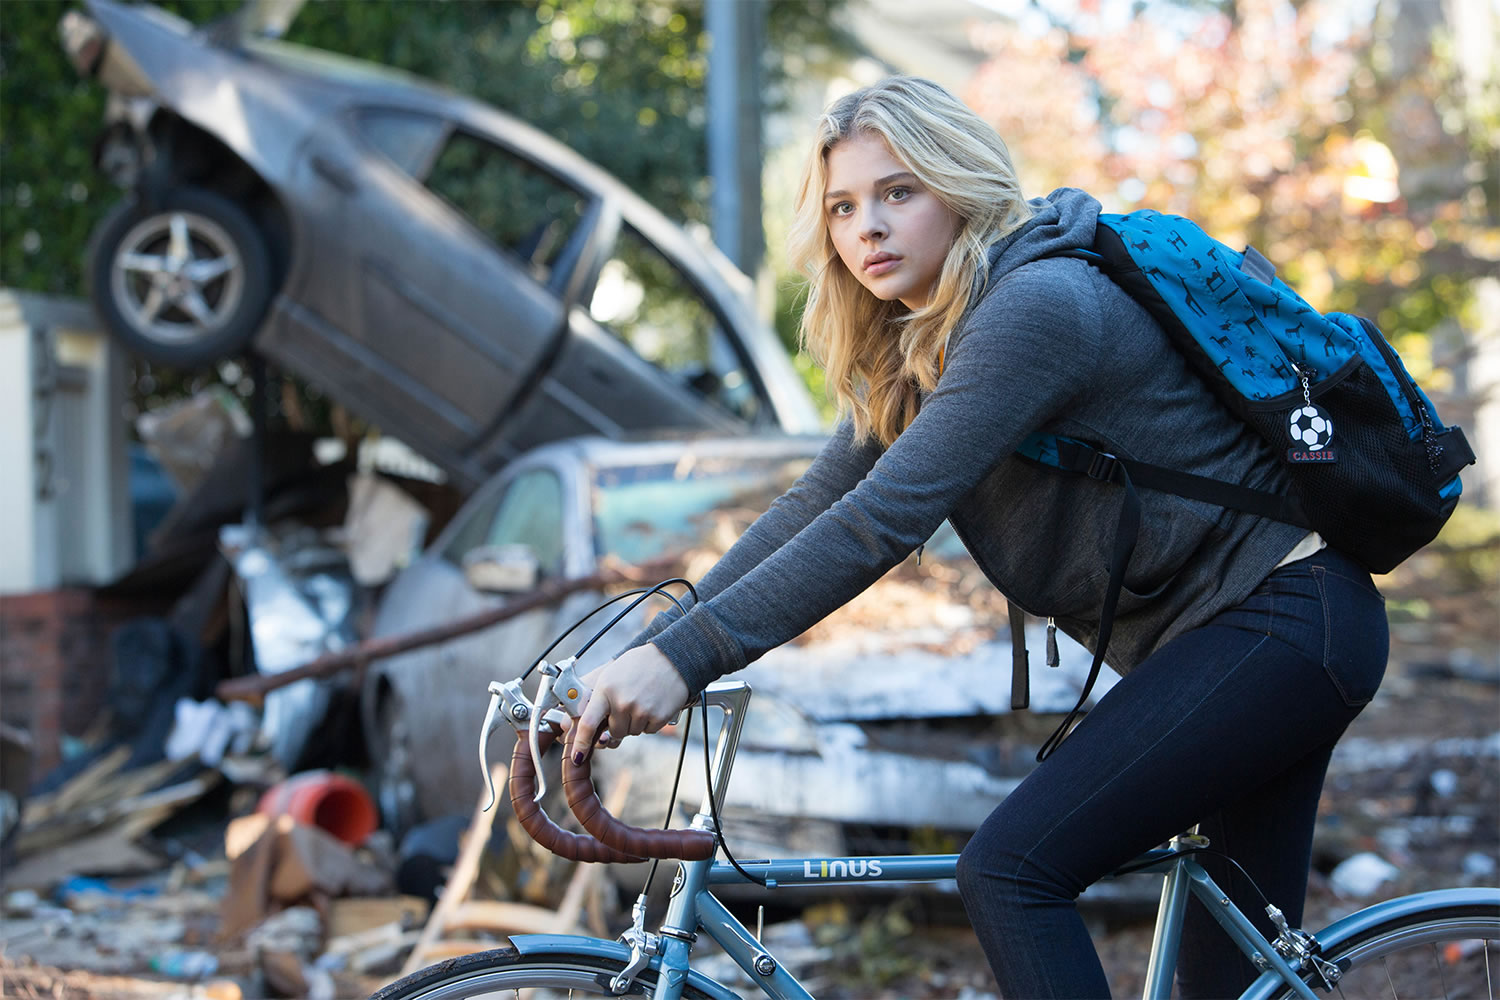 girl on bike, The 5th Wave (2016)